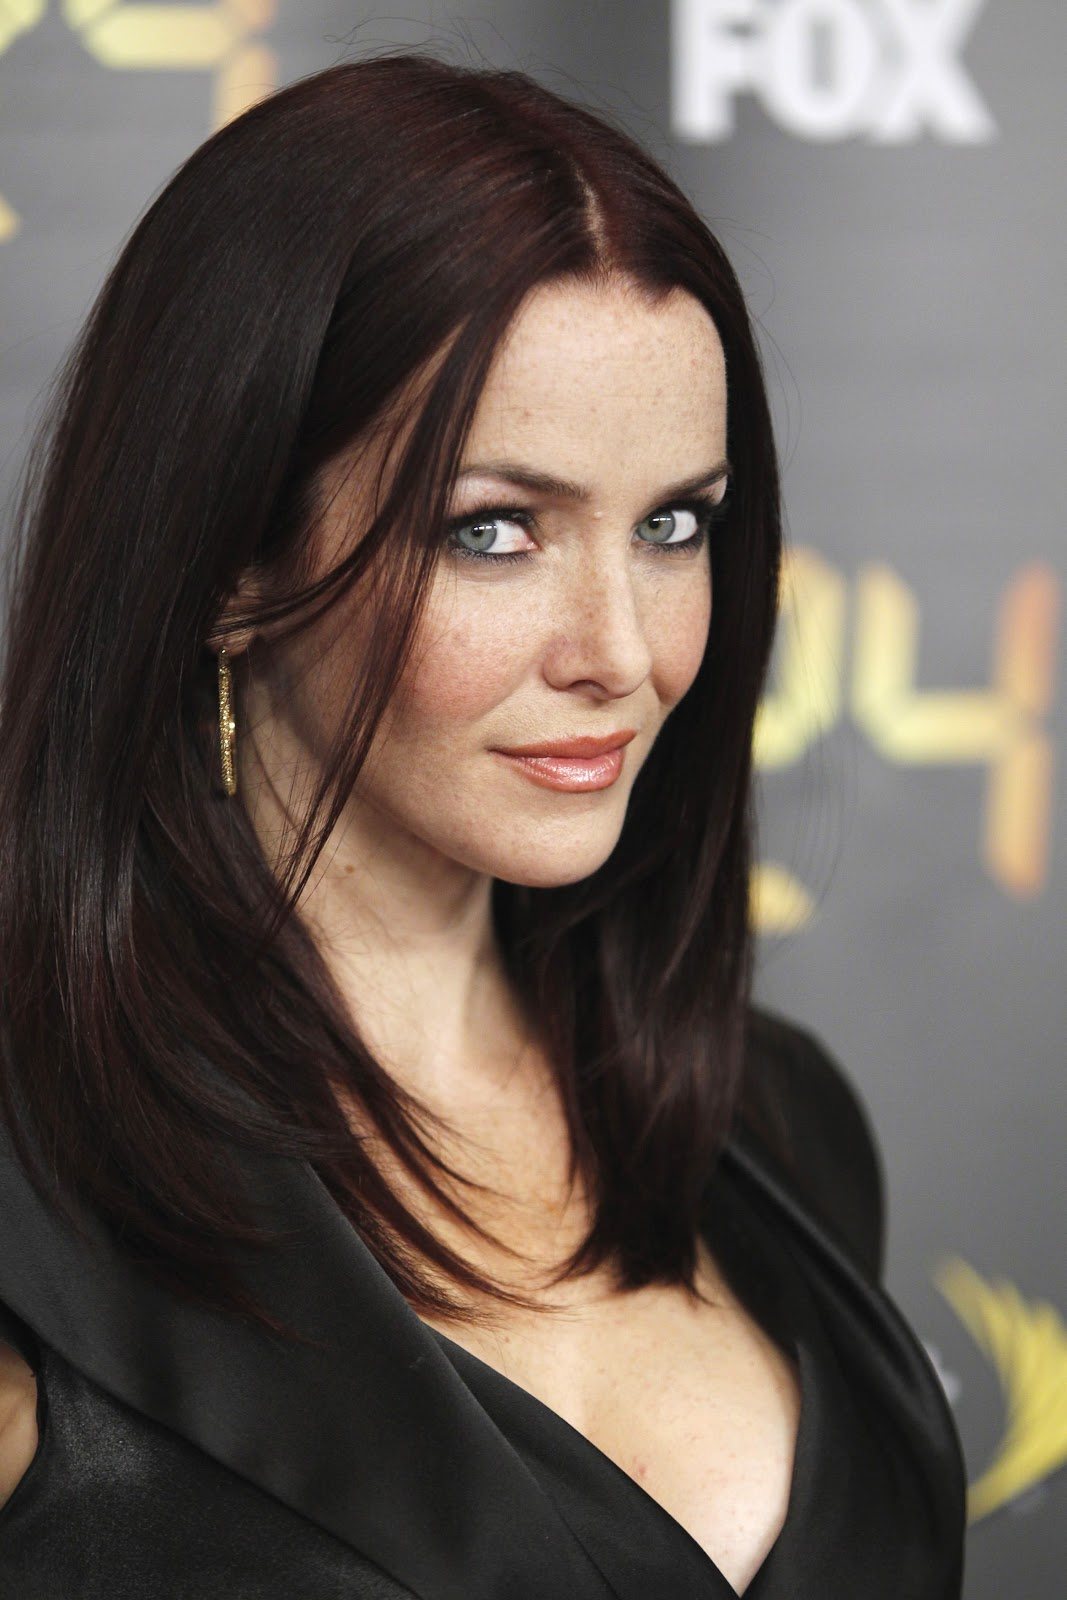 annie wersching - photo #5